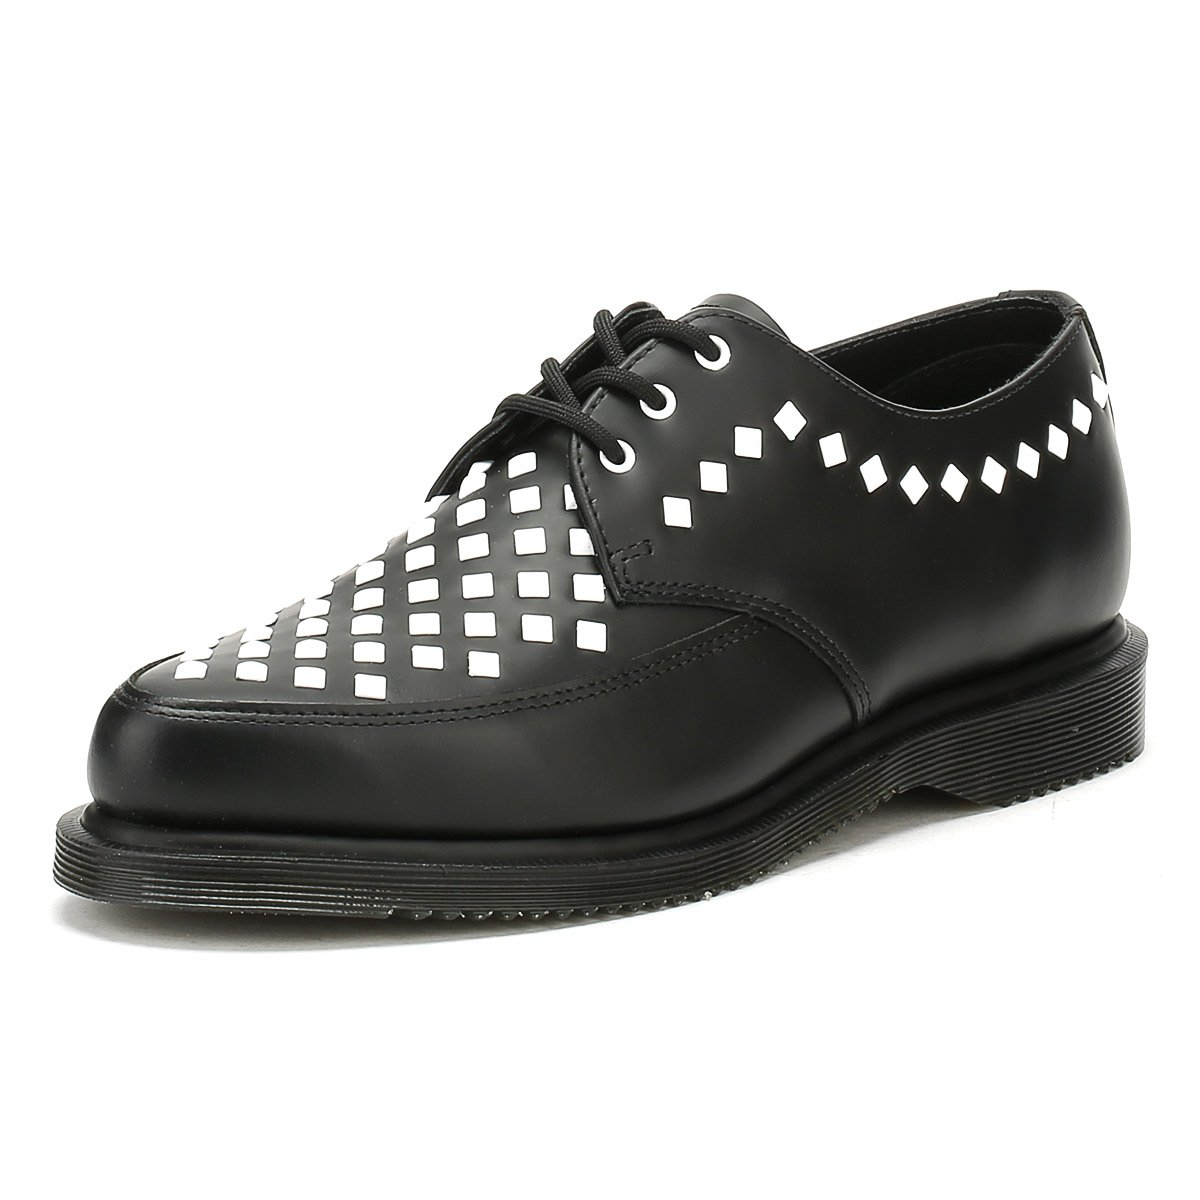 Dr. Martens Unisex Willis Stud Creeper B0721DZFYP 7 M UK|Black Smooth